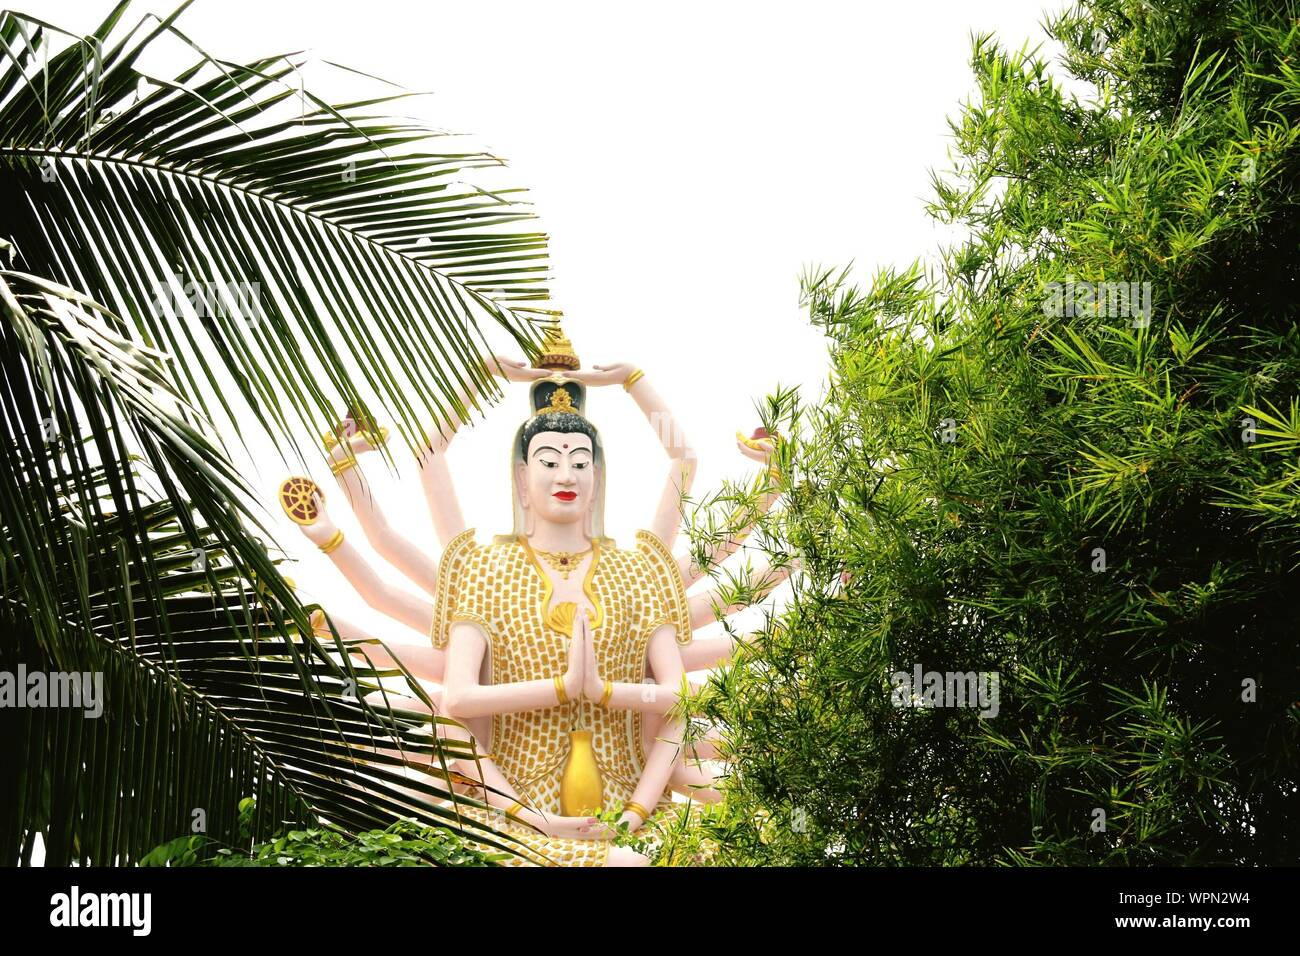 Low Angle View Of Guanyin Statue At Wat Plai Laem Temple Stock Photo